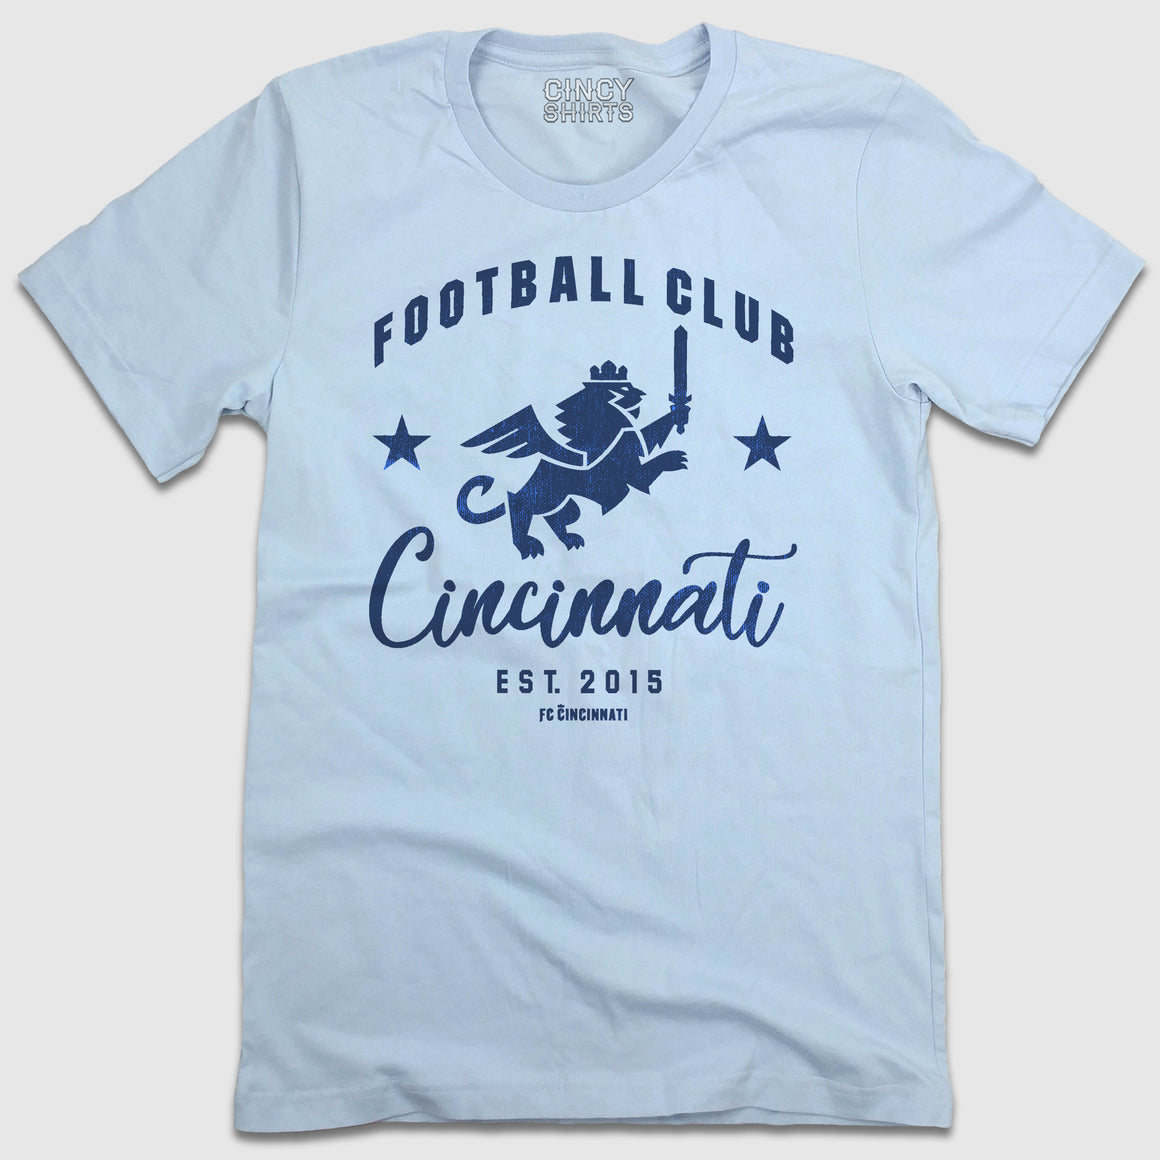 Football Club Cincinnati EST 2015 T-shirt